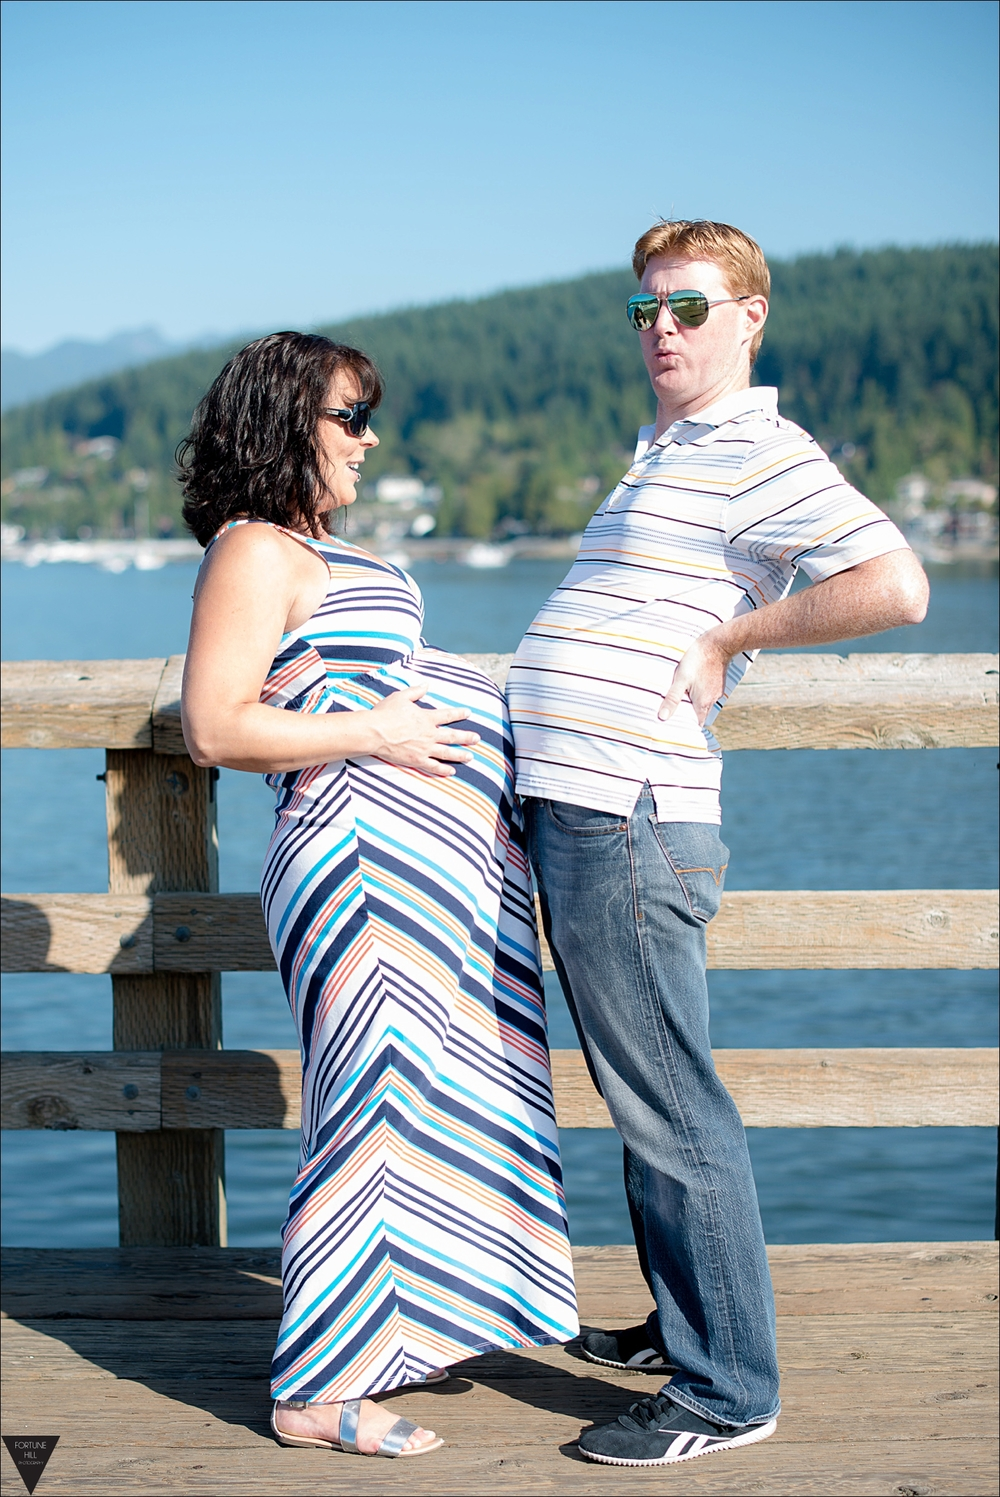 Rocky Point Park Maternity photos 0003.JPG